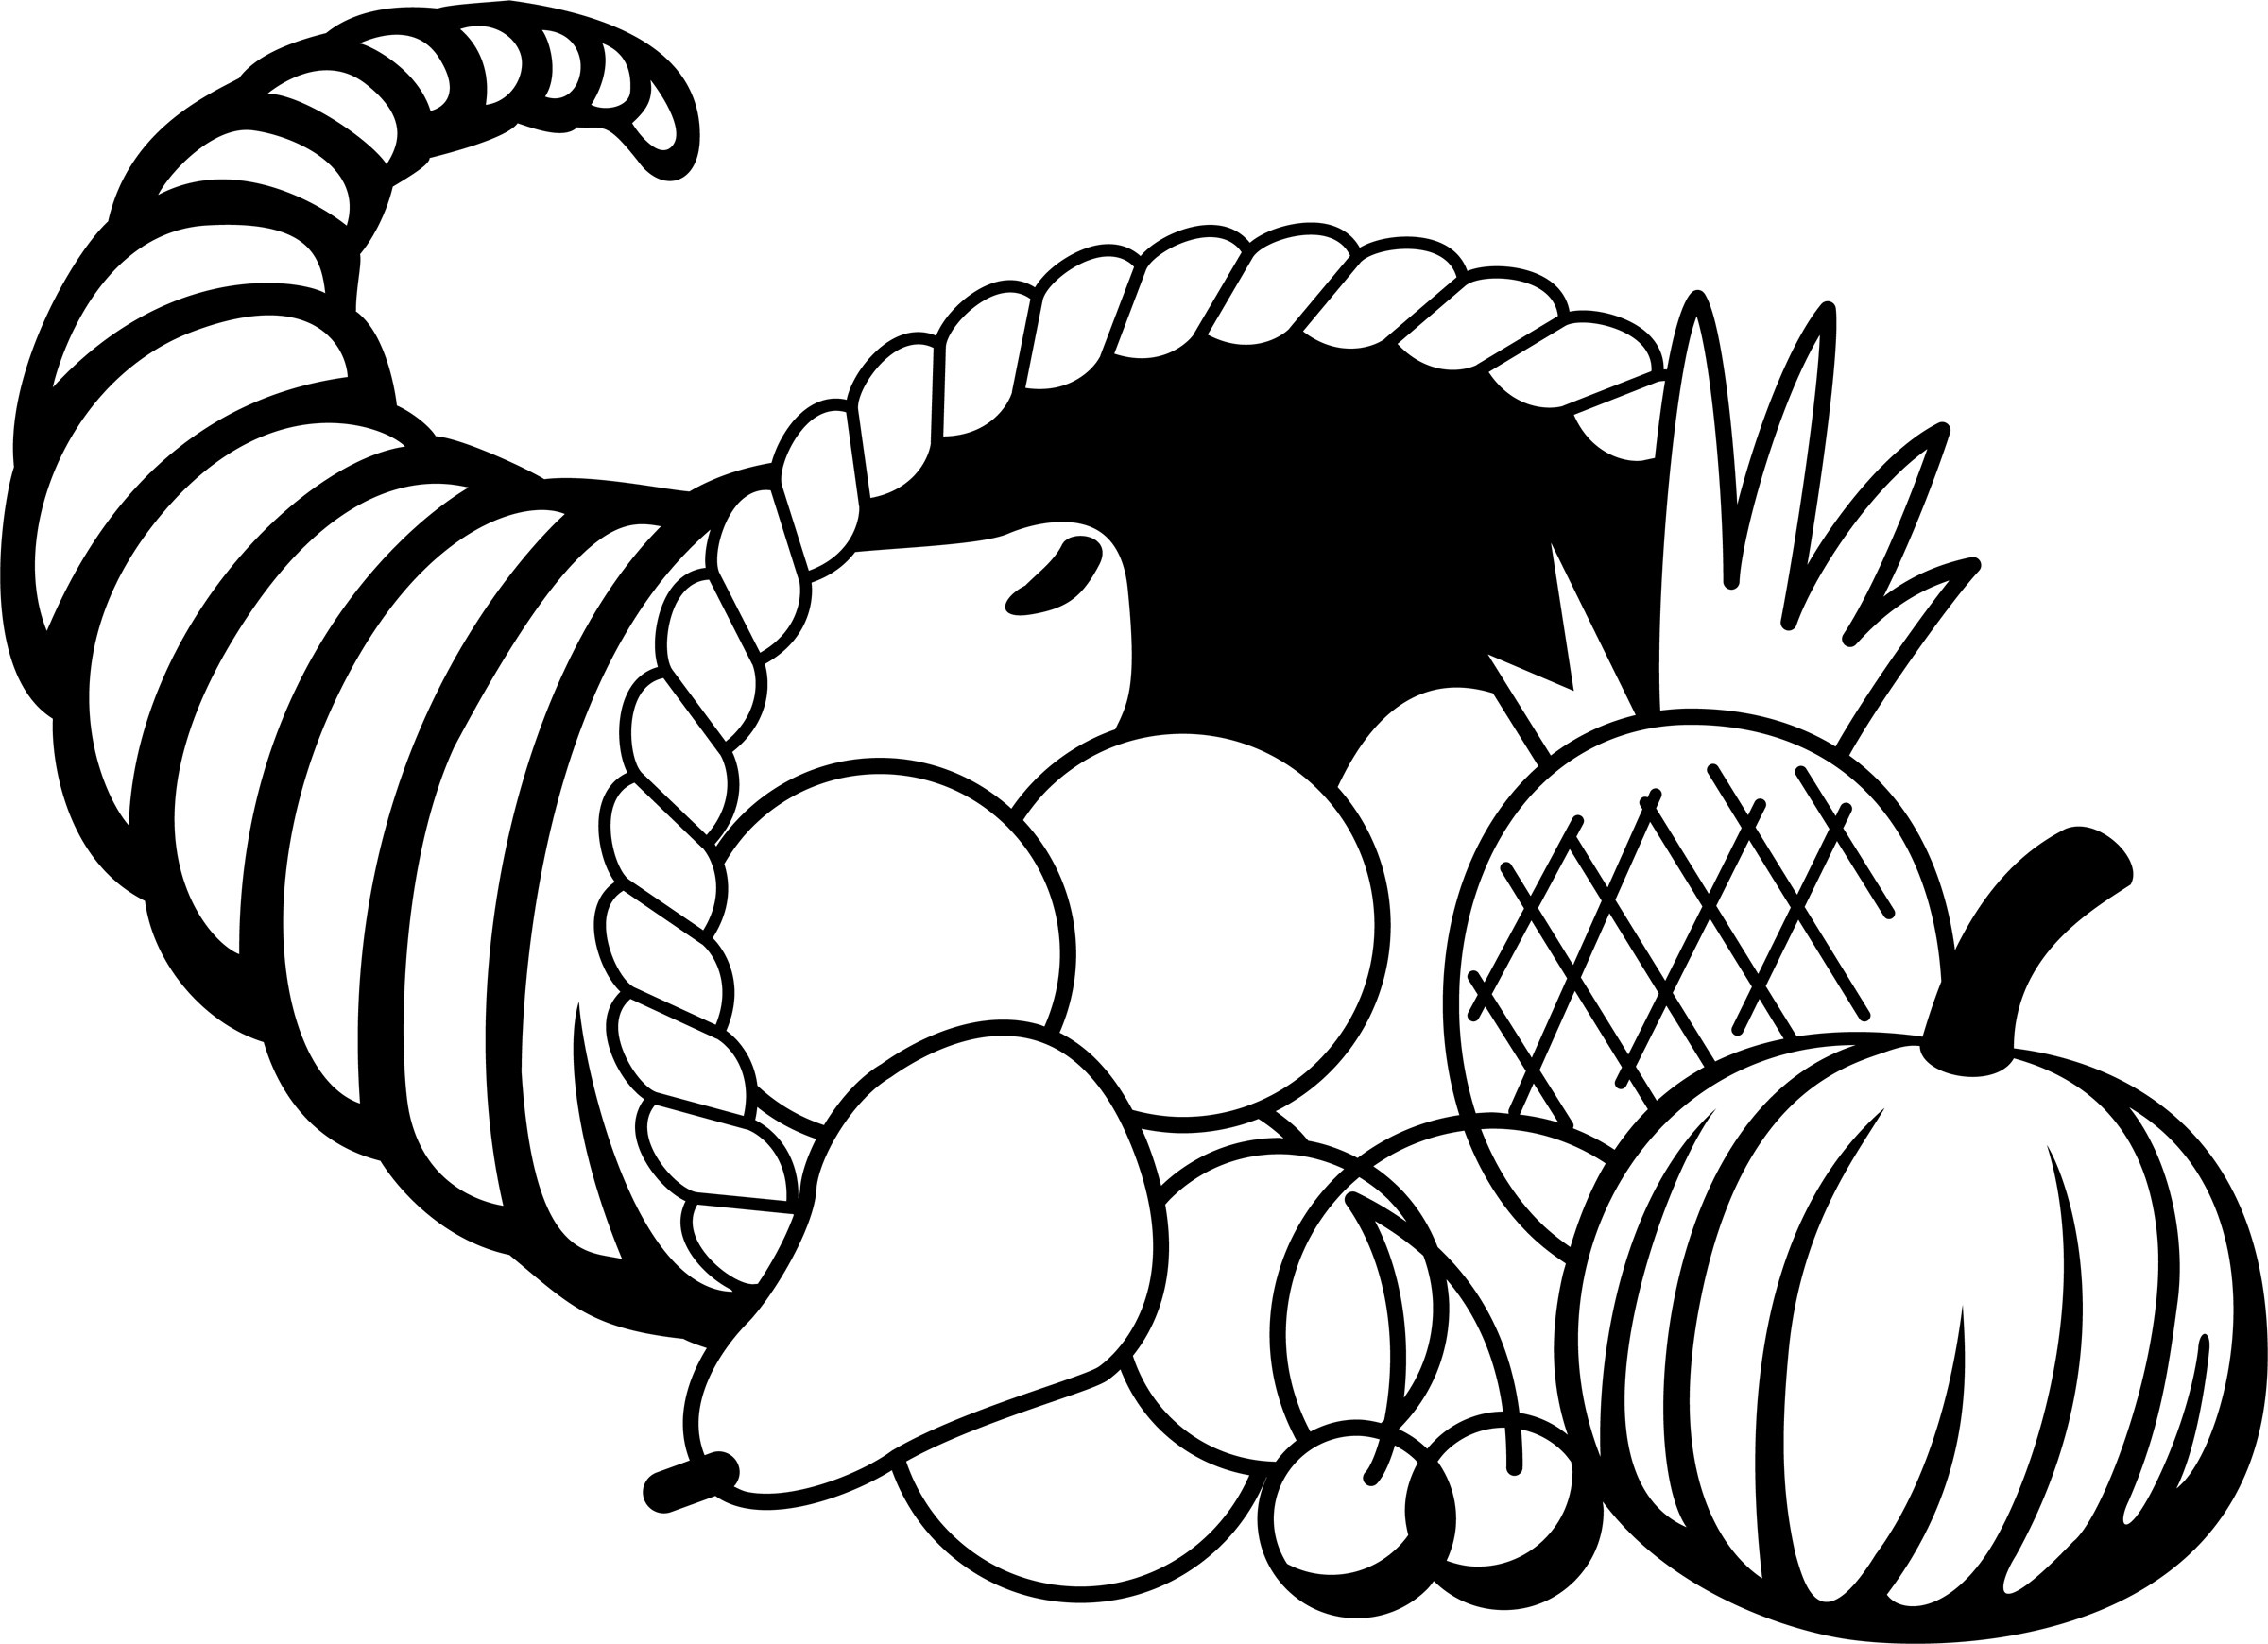 Thanksgiving Turkey Clipart Black And White  Thanksgiving Black And White Clipart Clipart Suggest